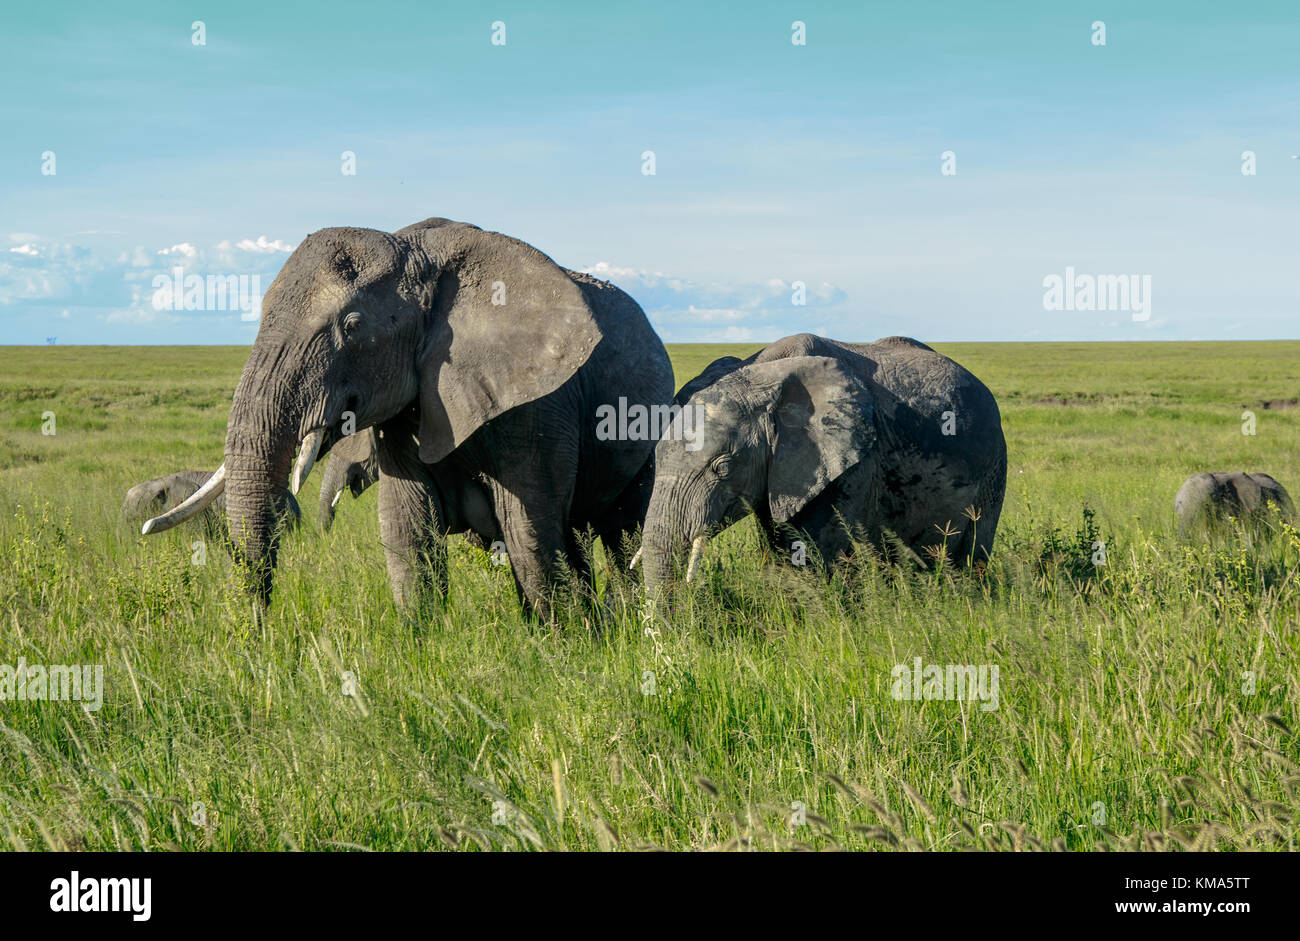 African elephant mother with a calf - Stock Image